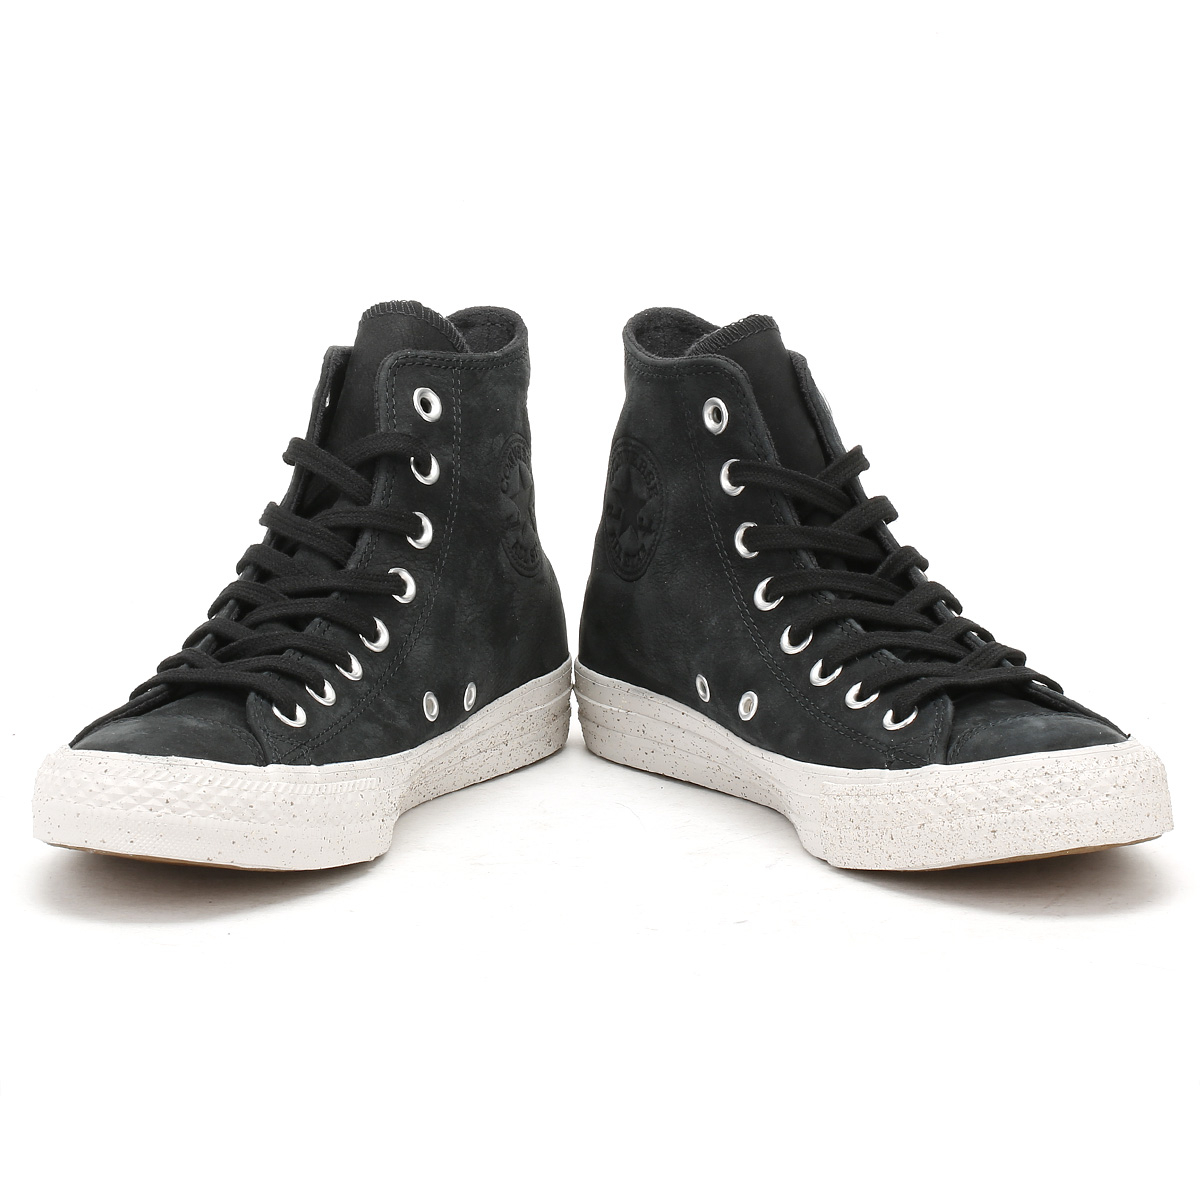 aae9f755291 Converse Mens Trainers Chuck Taylor All Star Black Nubuck Hi Tops Sneakers  Shoes